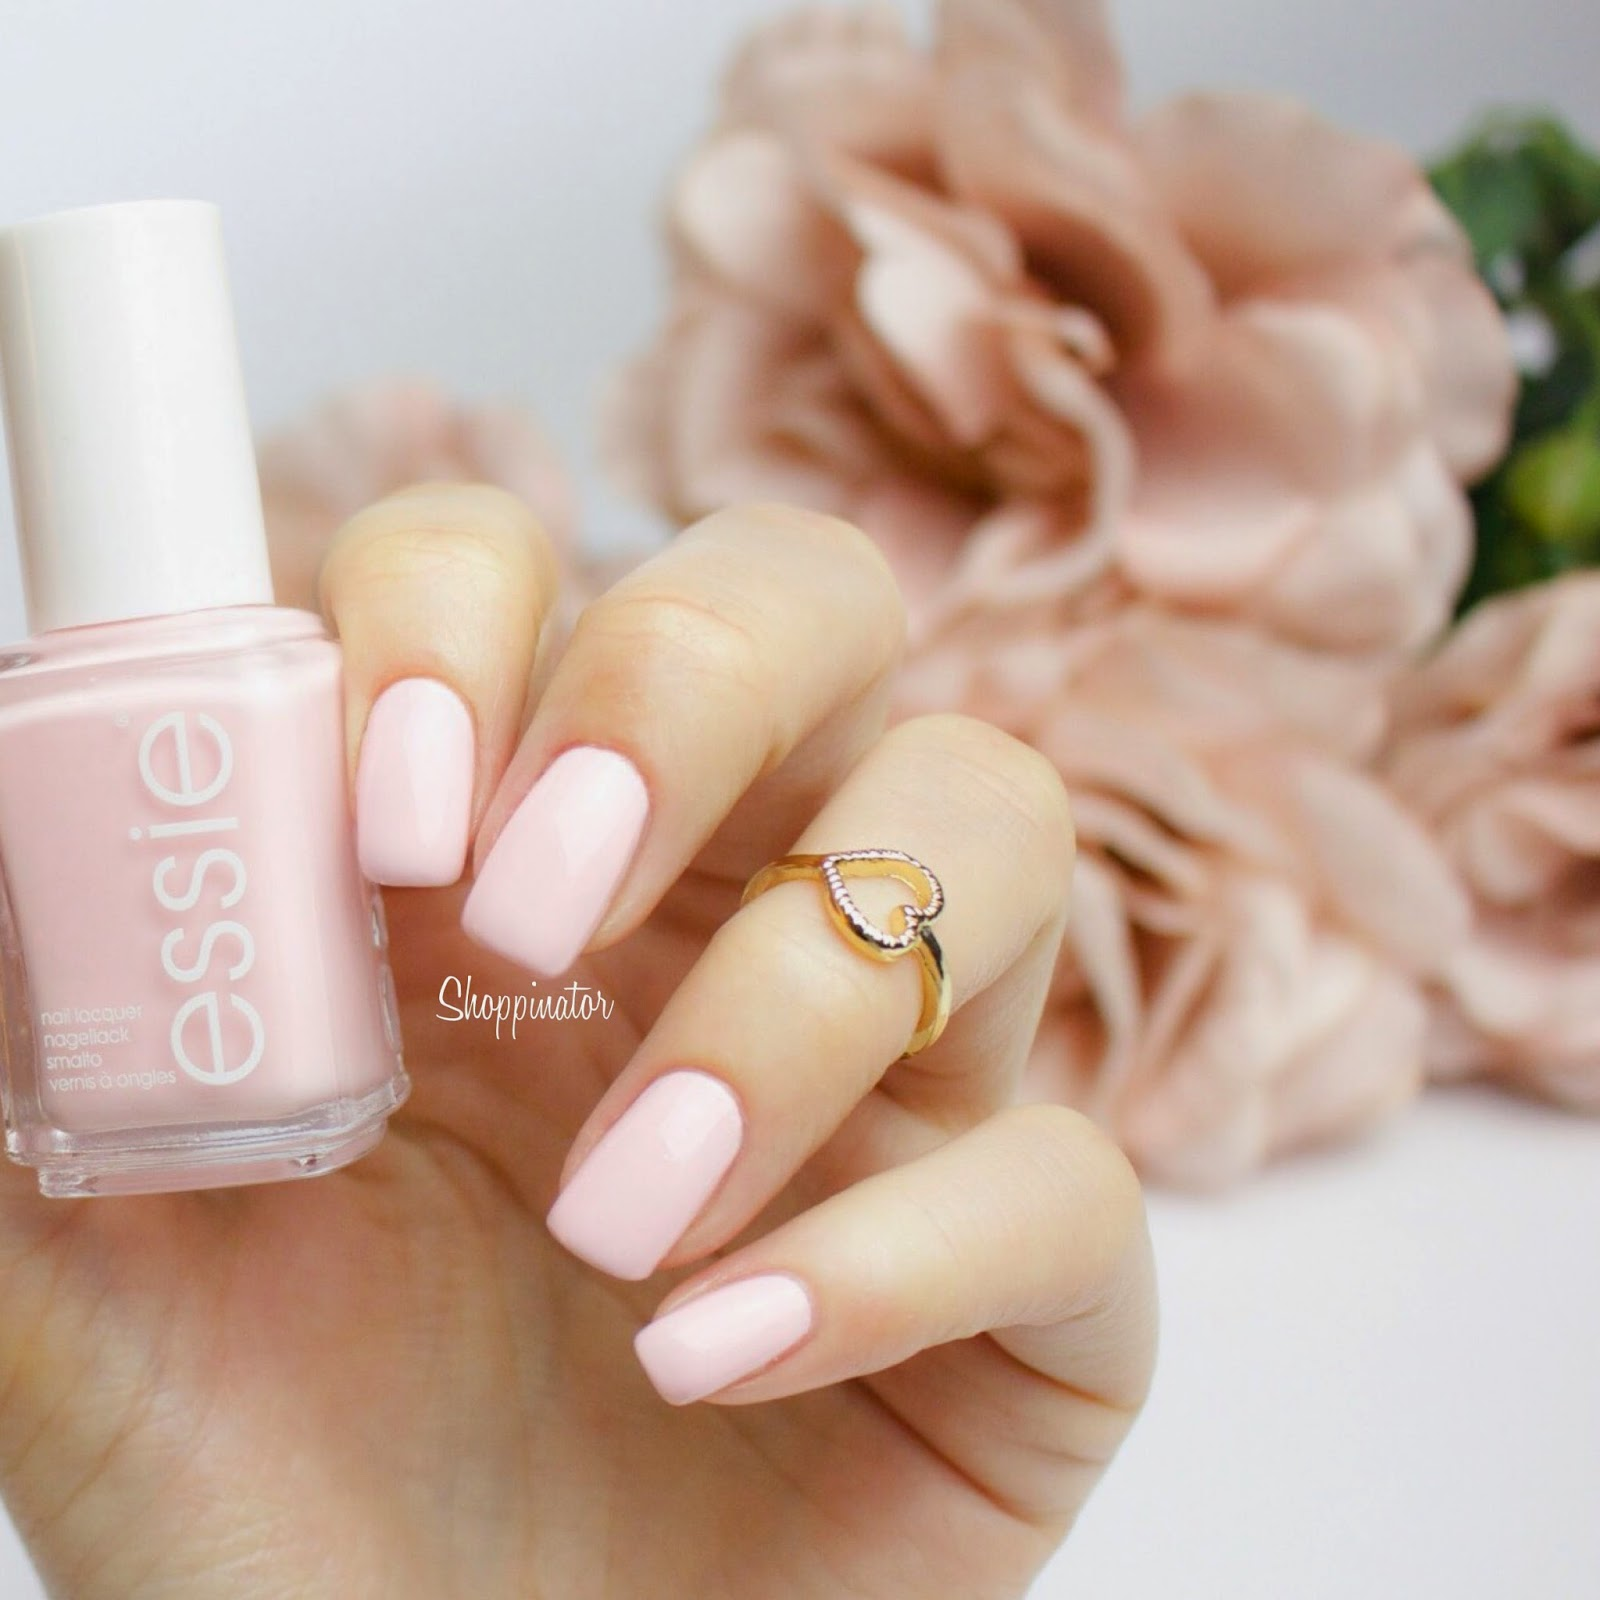 Essie-Romper-Room-Swatch-Nagelack-Shoppinator-Rosa-Pink-Neu-im-Standardsortiment-Swatch